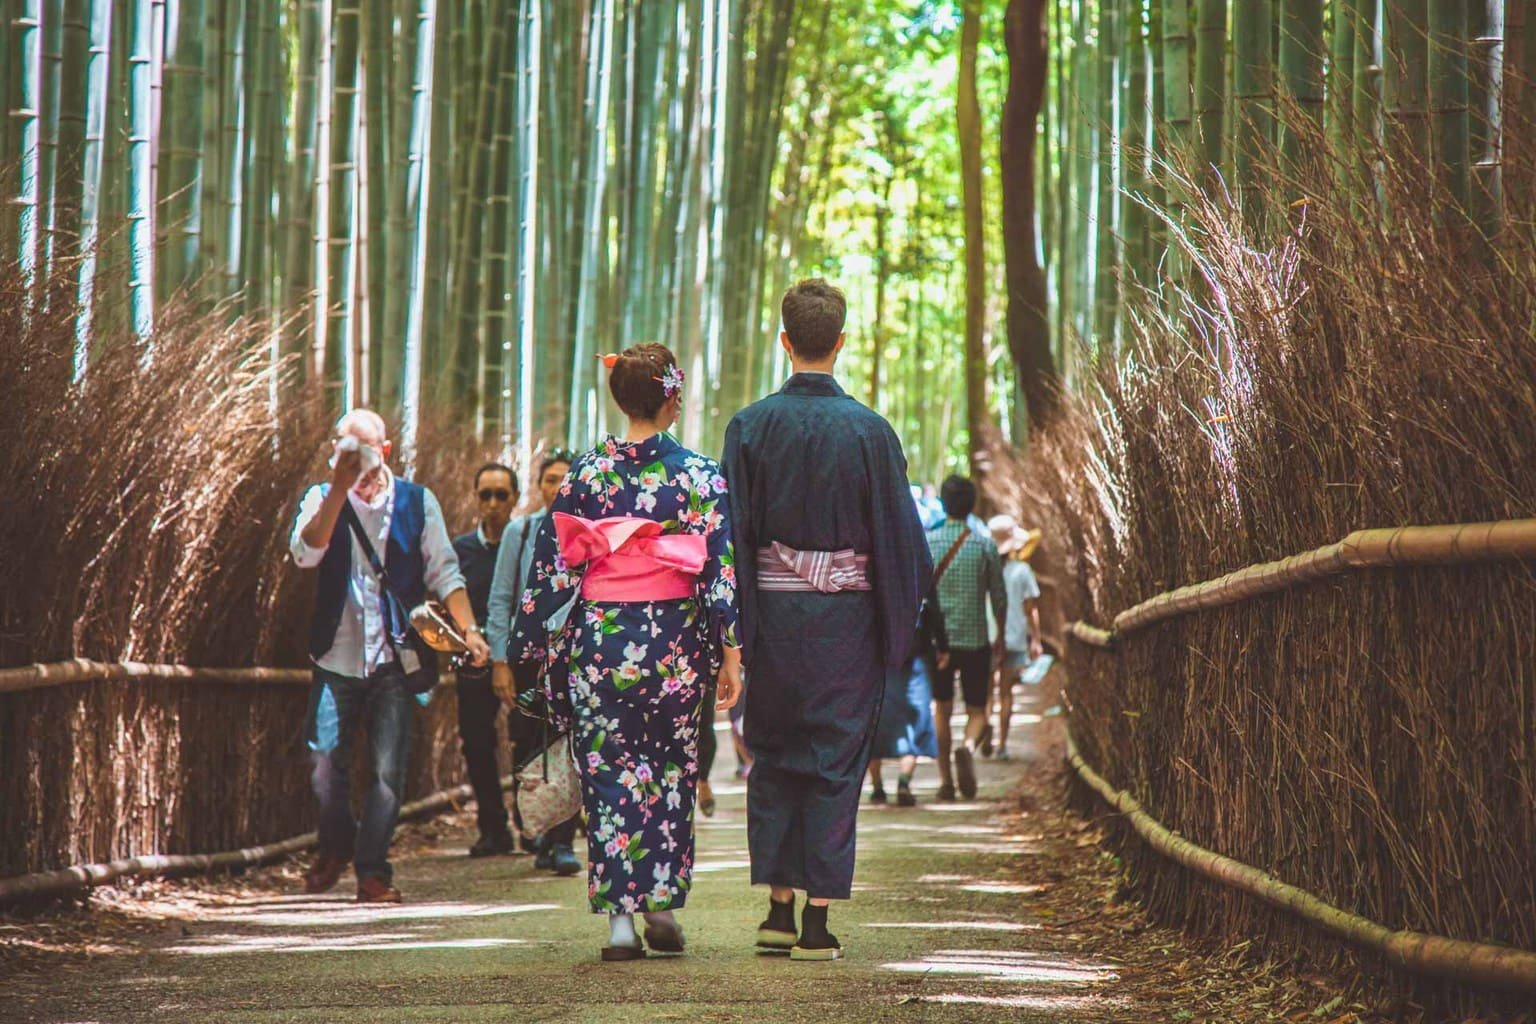 Bamboo Forest Kyoto, LGBT in Japan